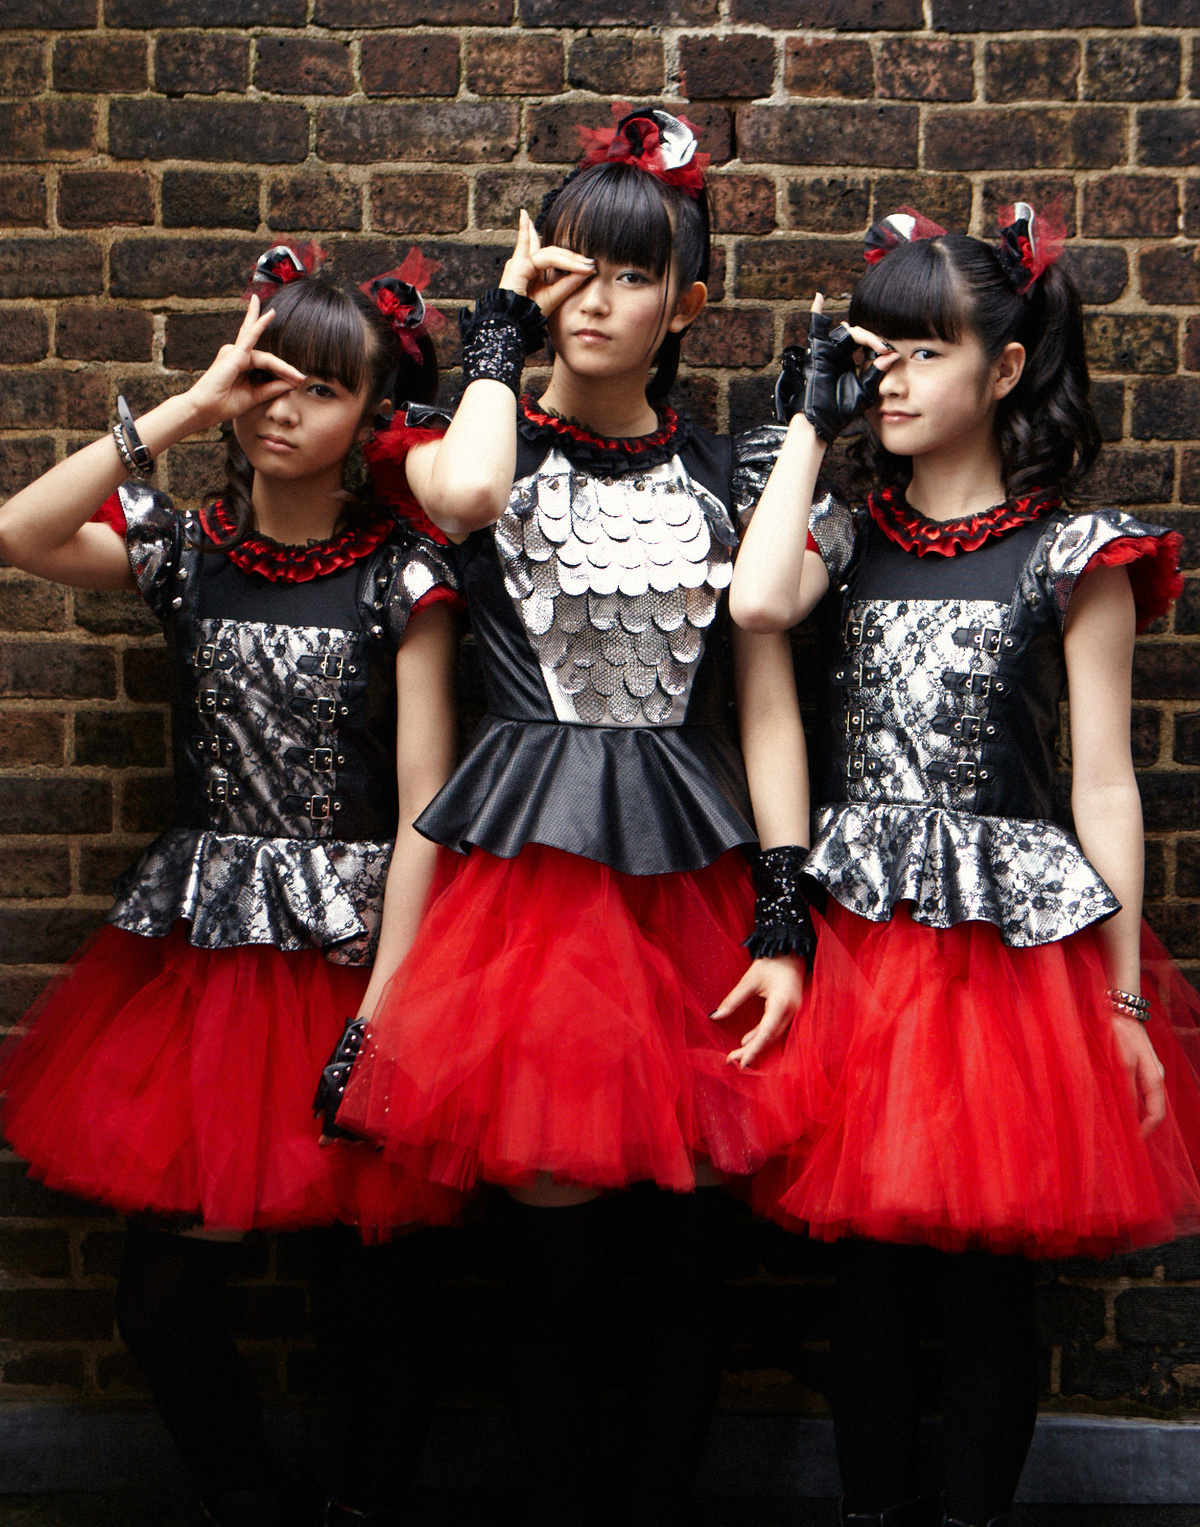 babymetal are bringing kawaii-metal to the world - i-D